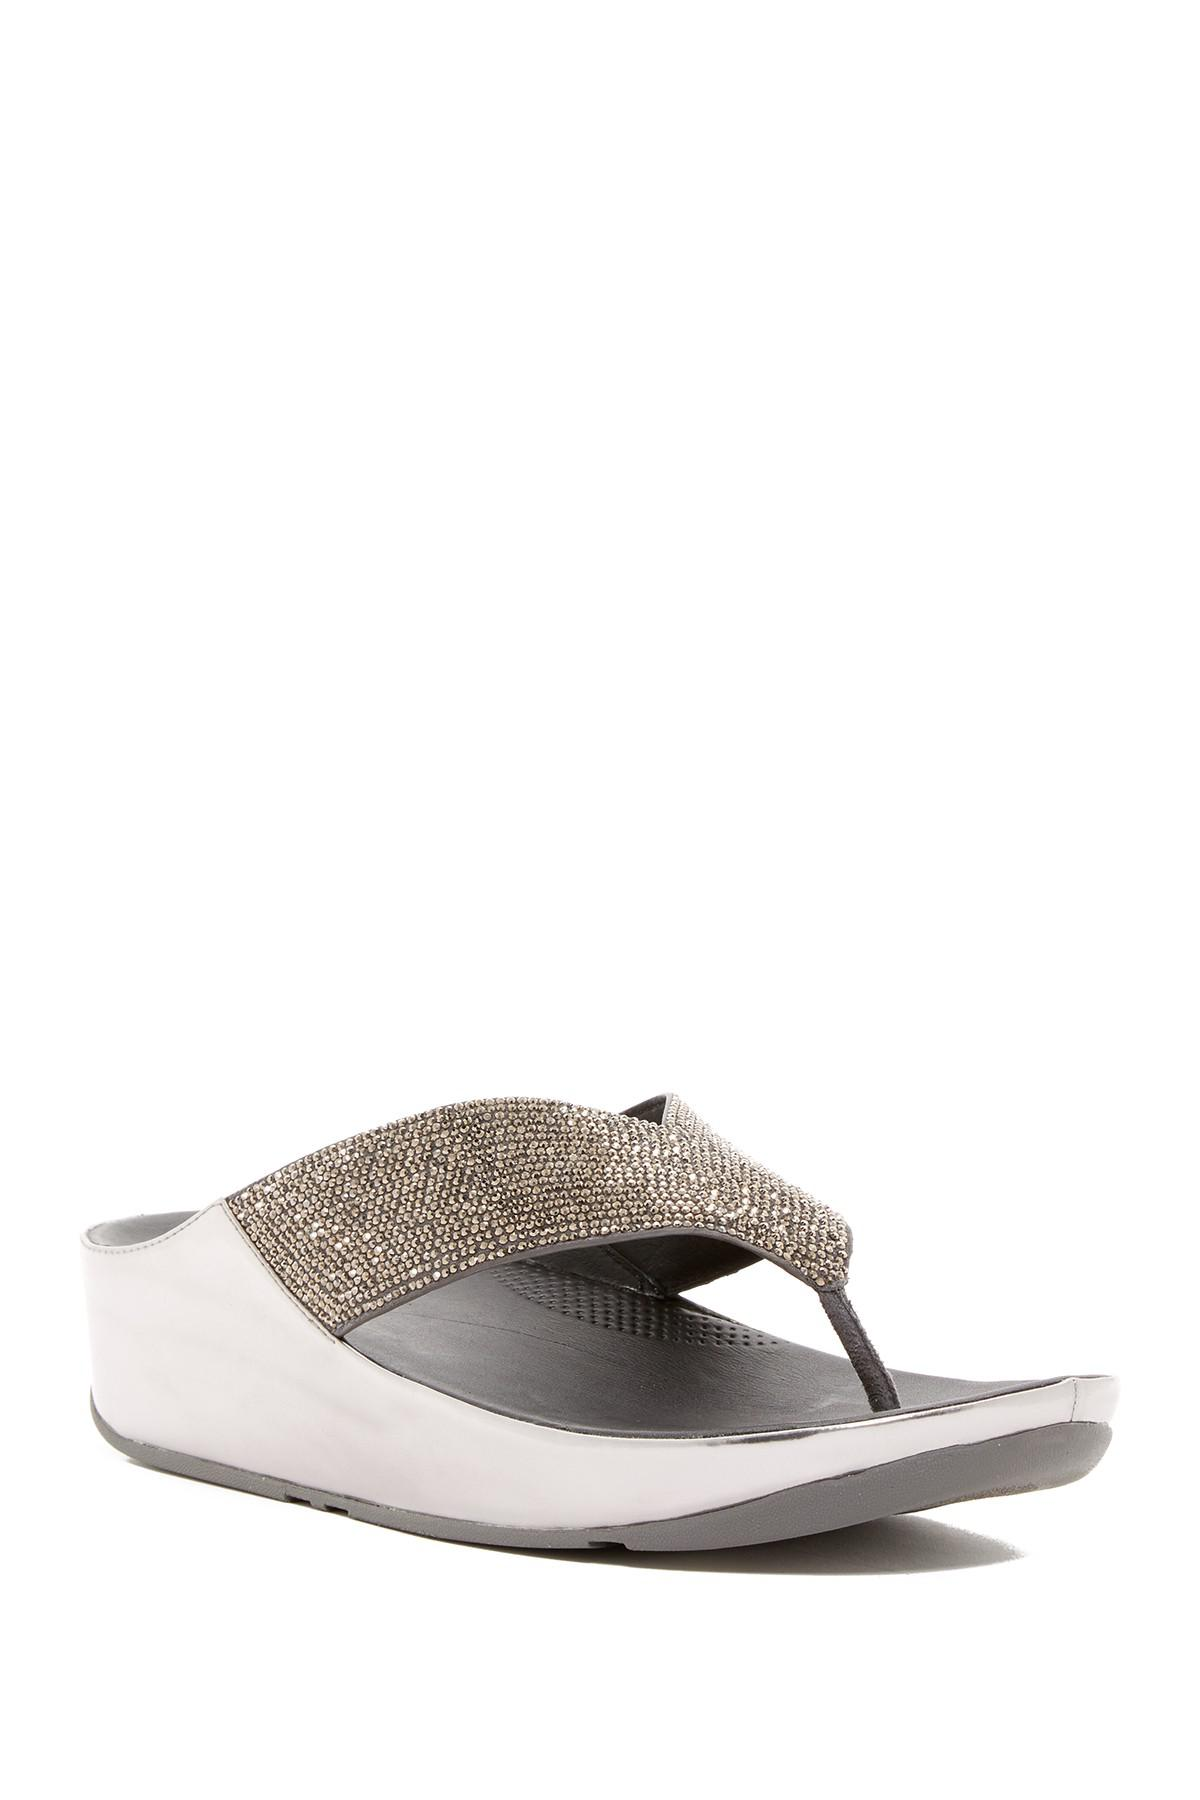 Fitflop Crystal Wedge Thong Sandal xrwoF